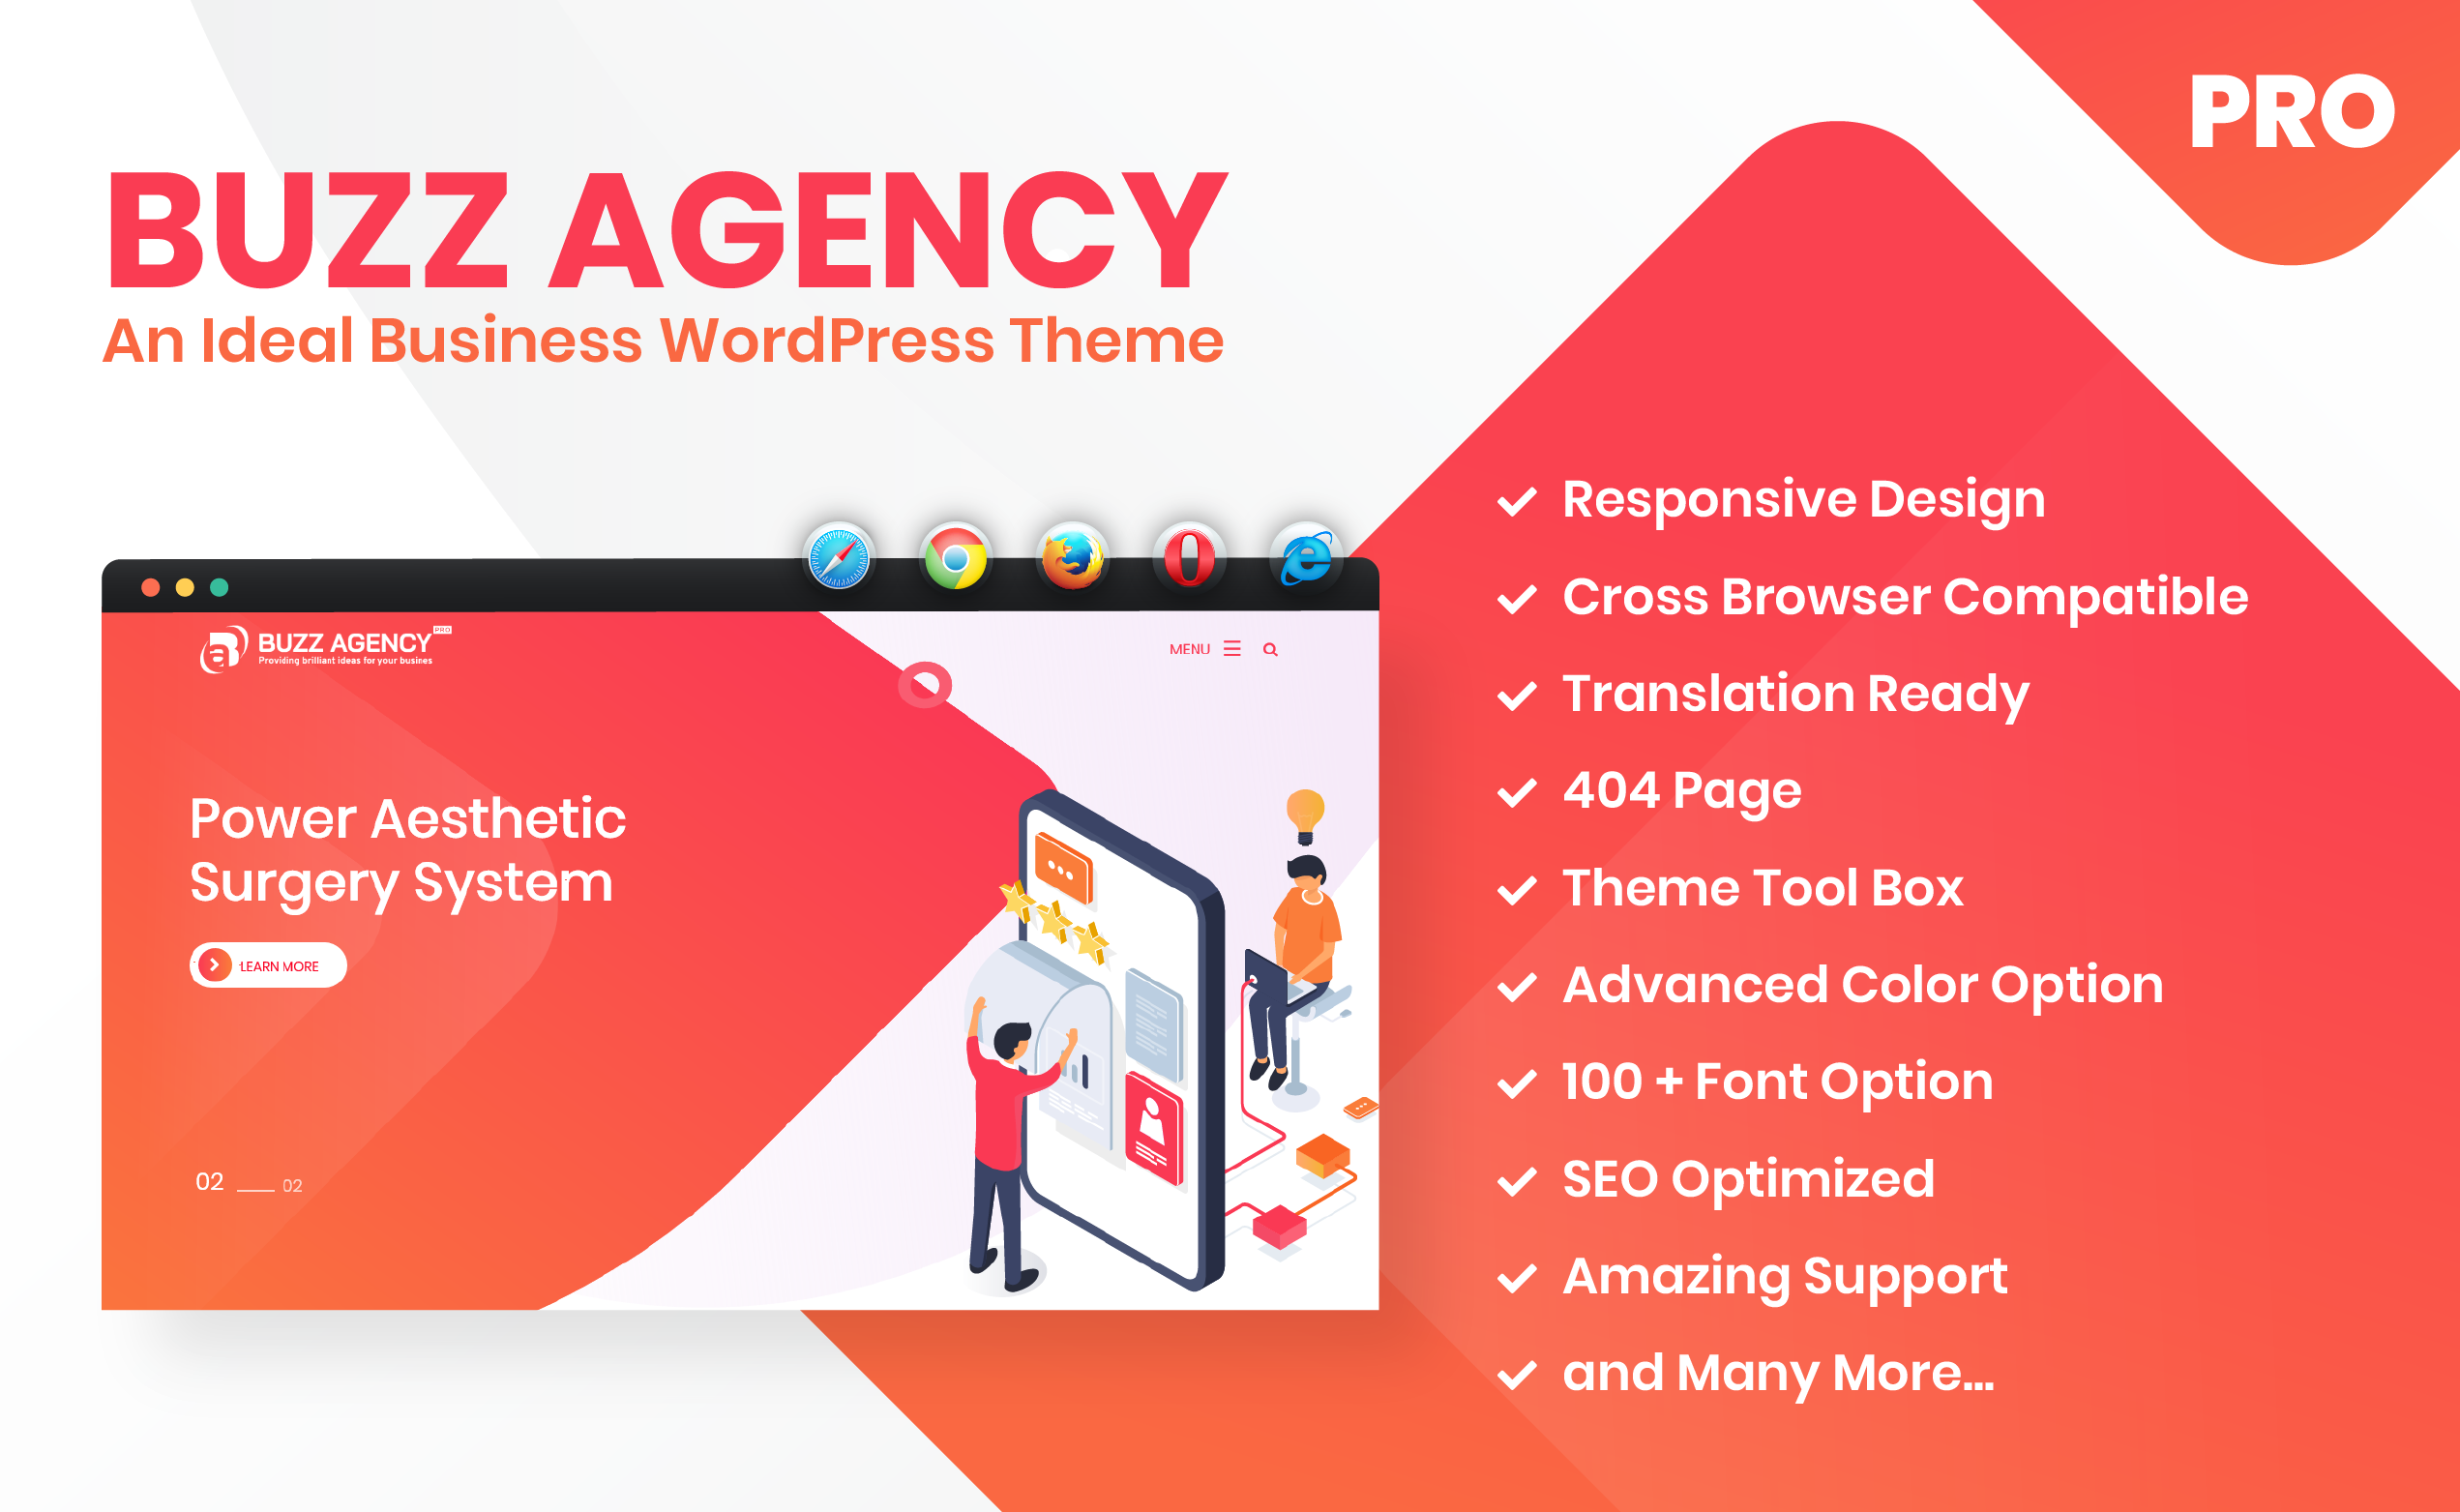 Buzz Agency Pro-An Ideal Business WordPress Premium Theme